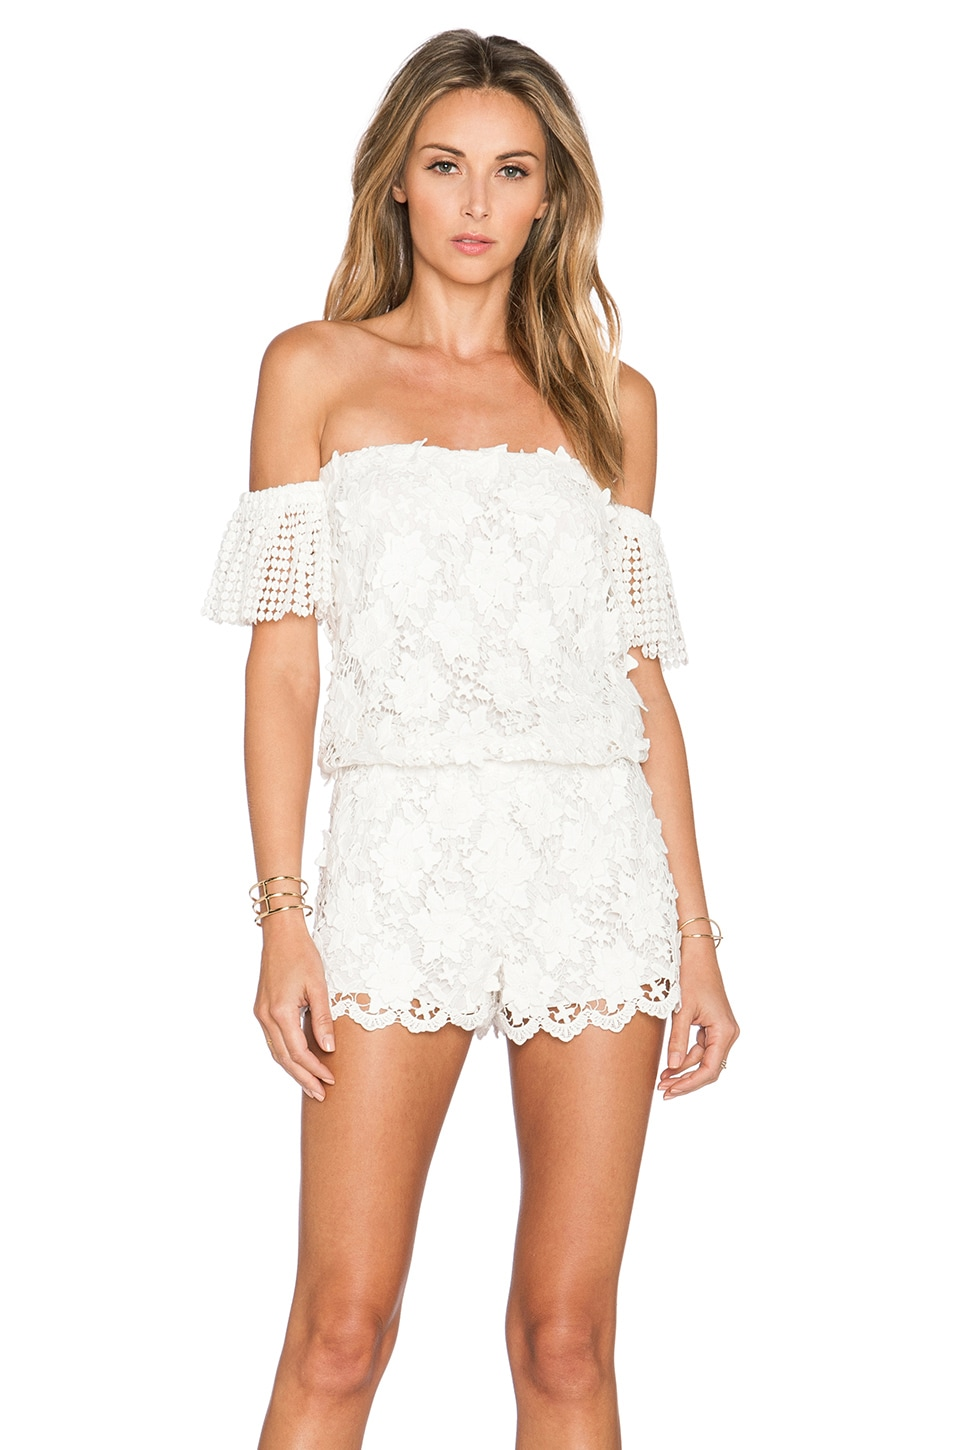 Alexis Kina Crochet Romper in White